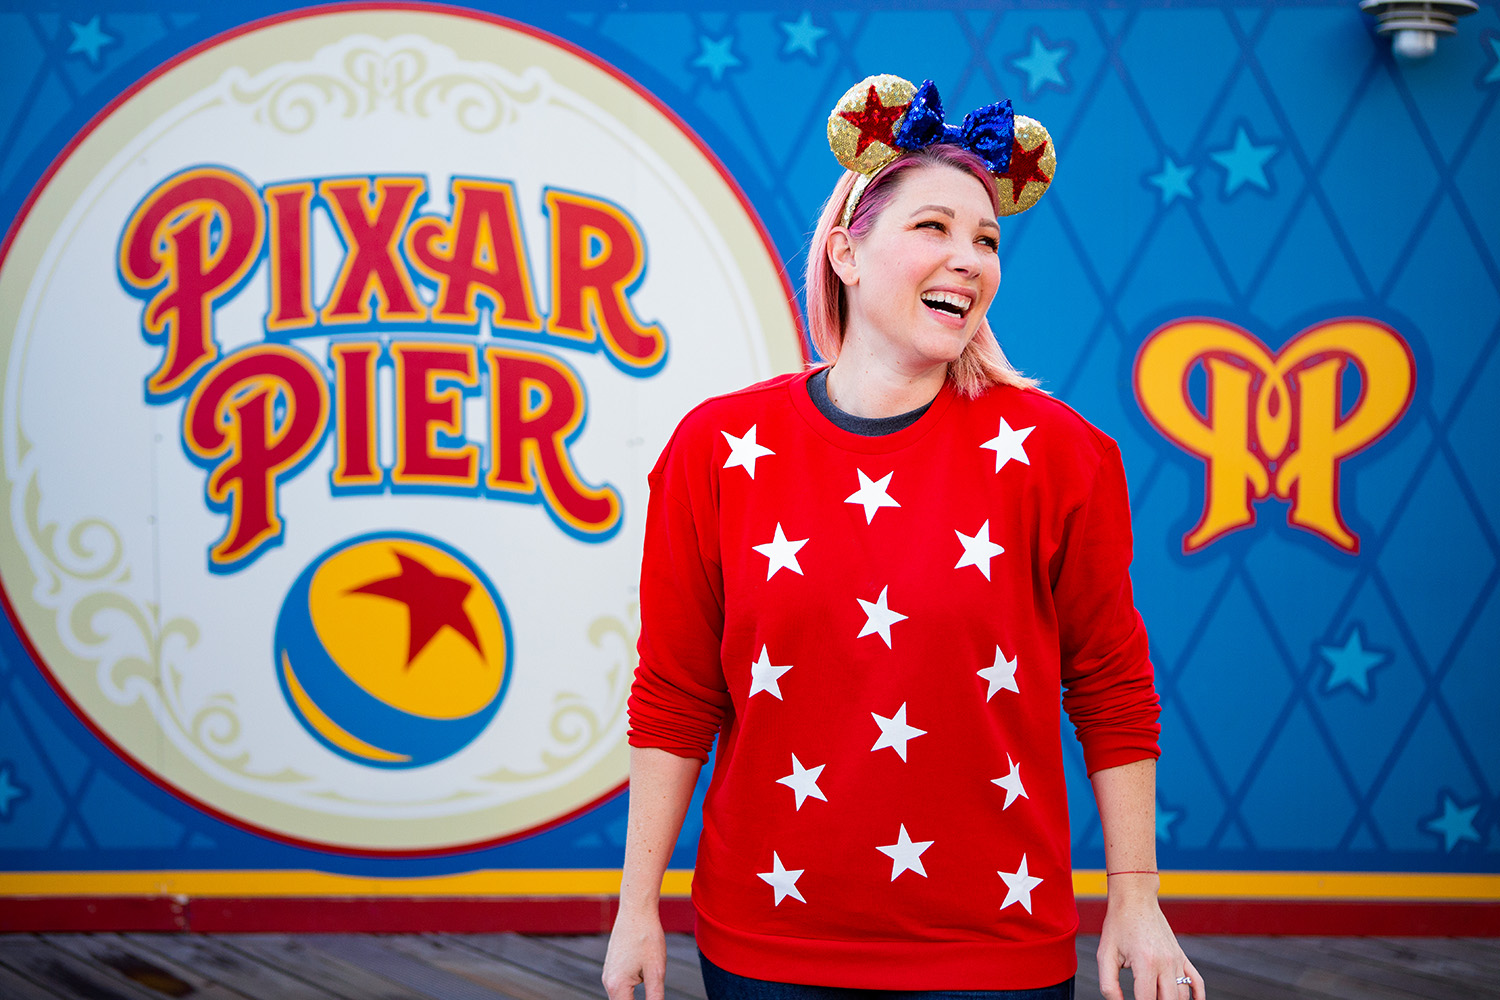 Looking for the perfect Disneyland outfits to wear to Pixarfest? I'm breaking down what to wear to Disneyland Pixarfest by movie, and sharing my must haves fun days at this summer's celebration!